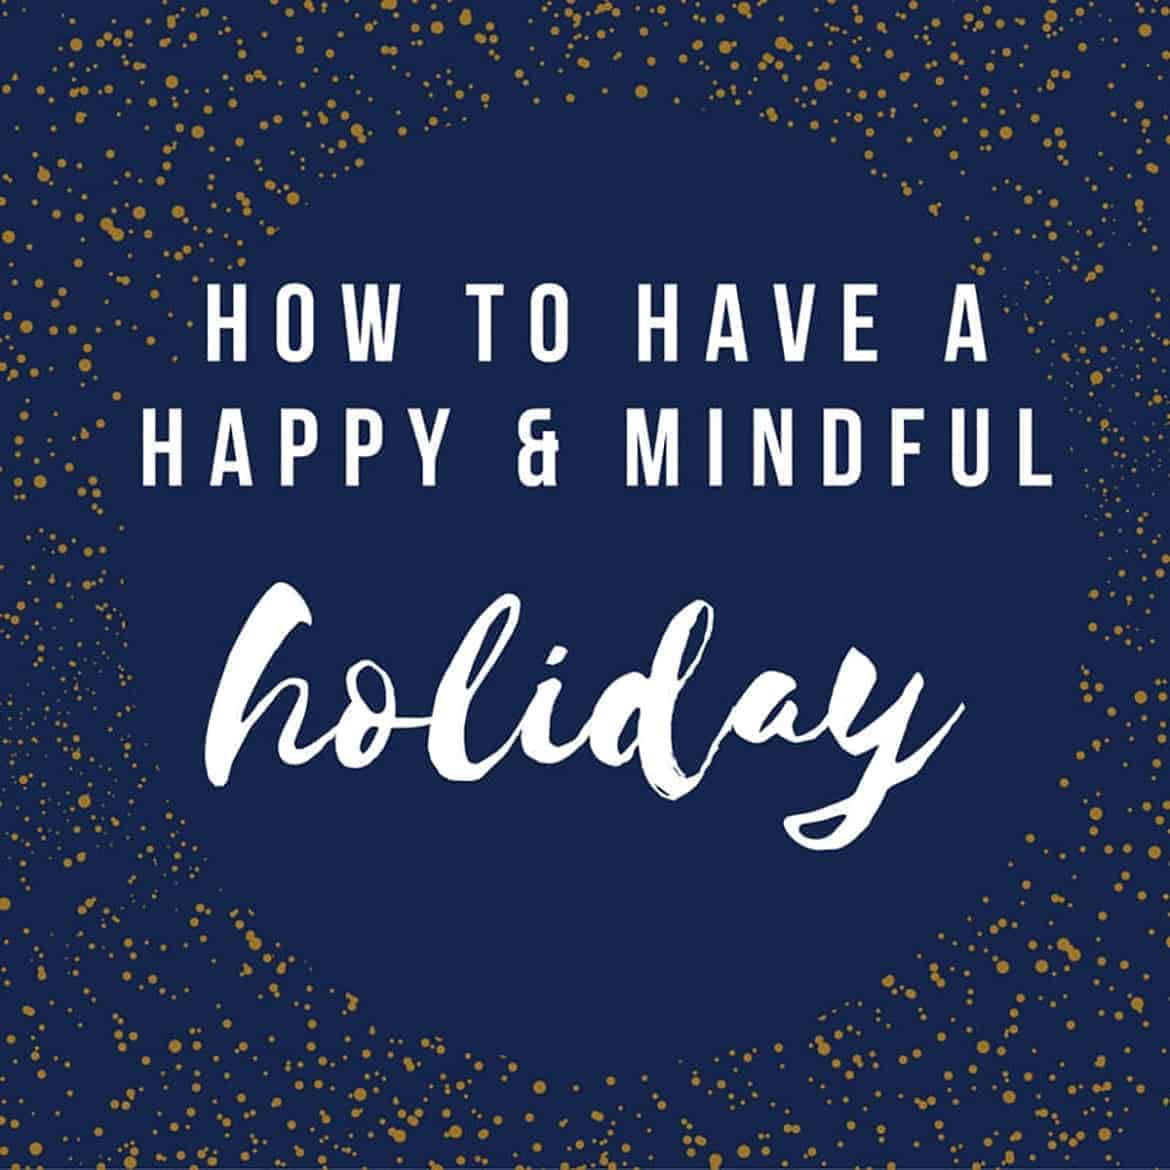 How to have a happy and mindful holiday. Four tips for cultivating joy, reducing stress and living your best holiday season.